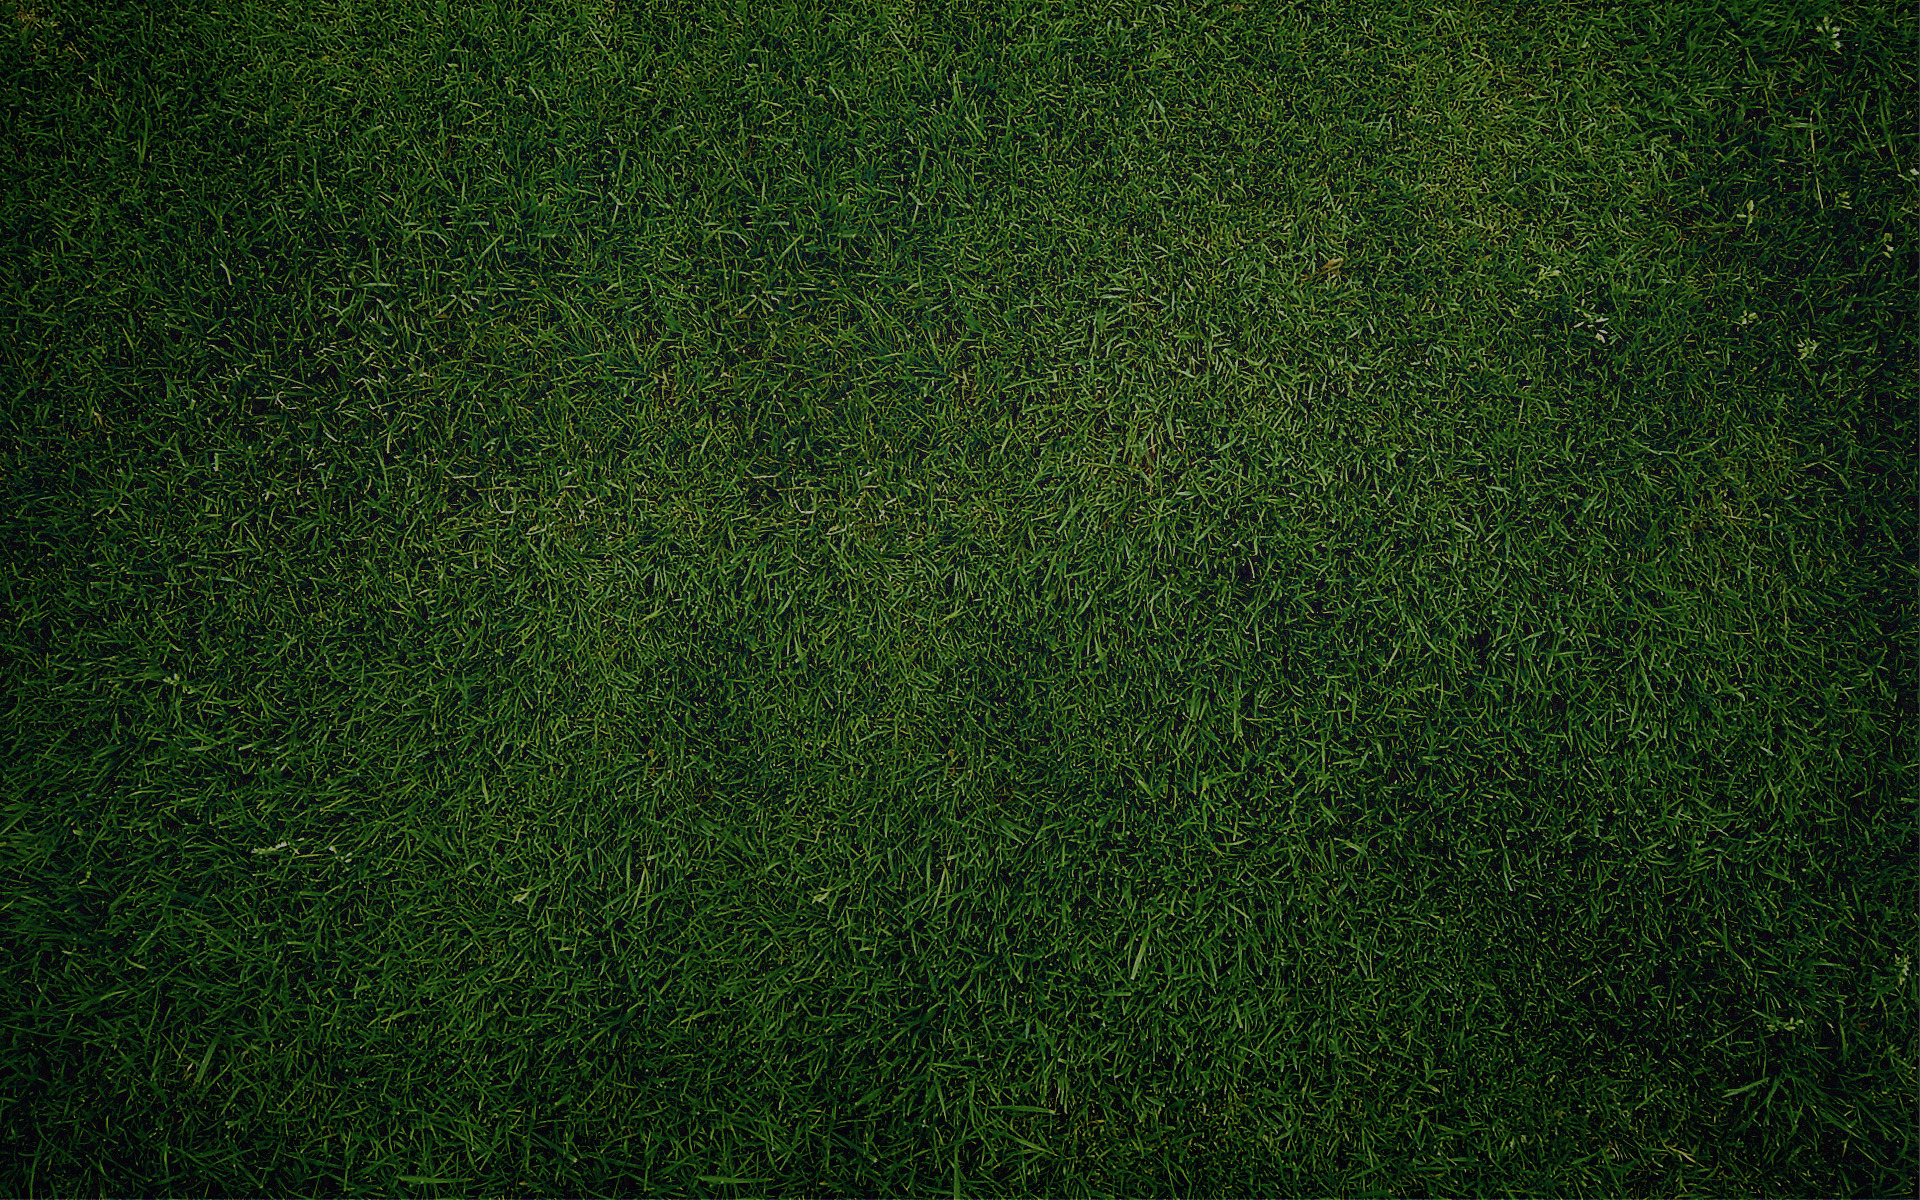 green grass, texture, background, download